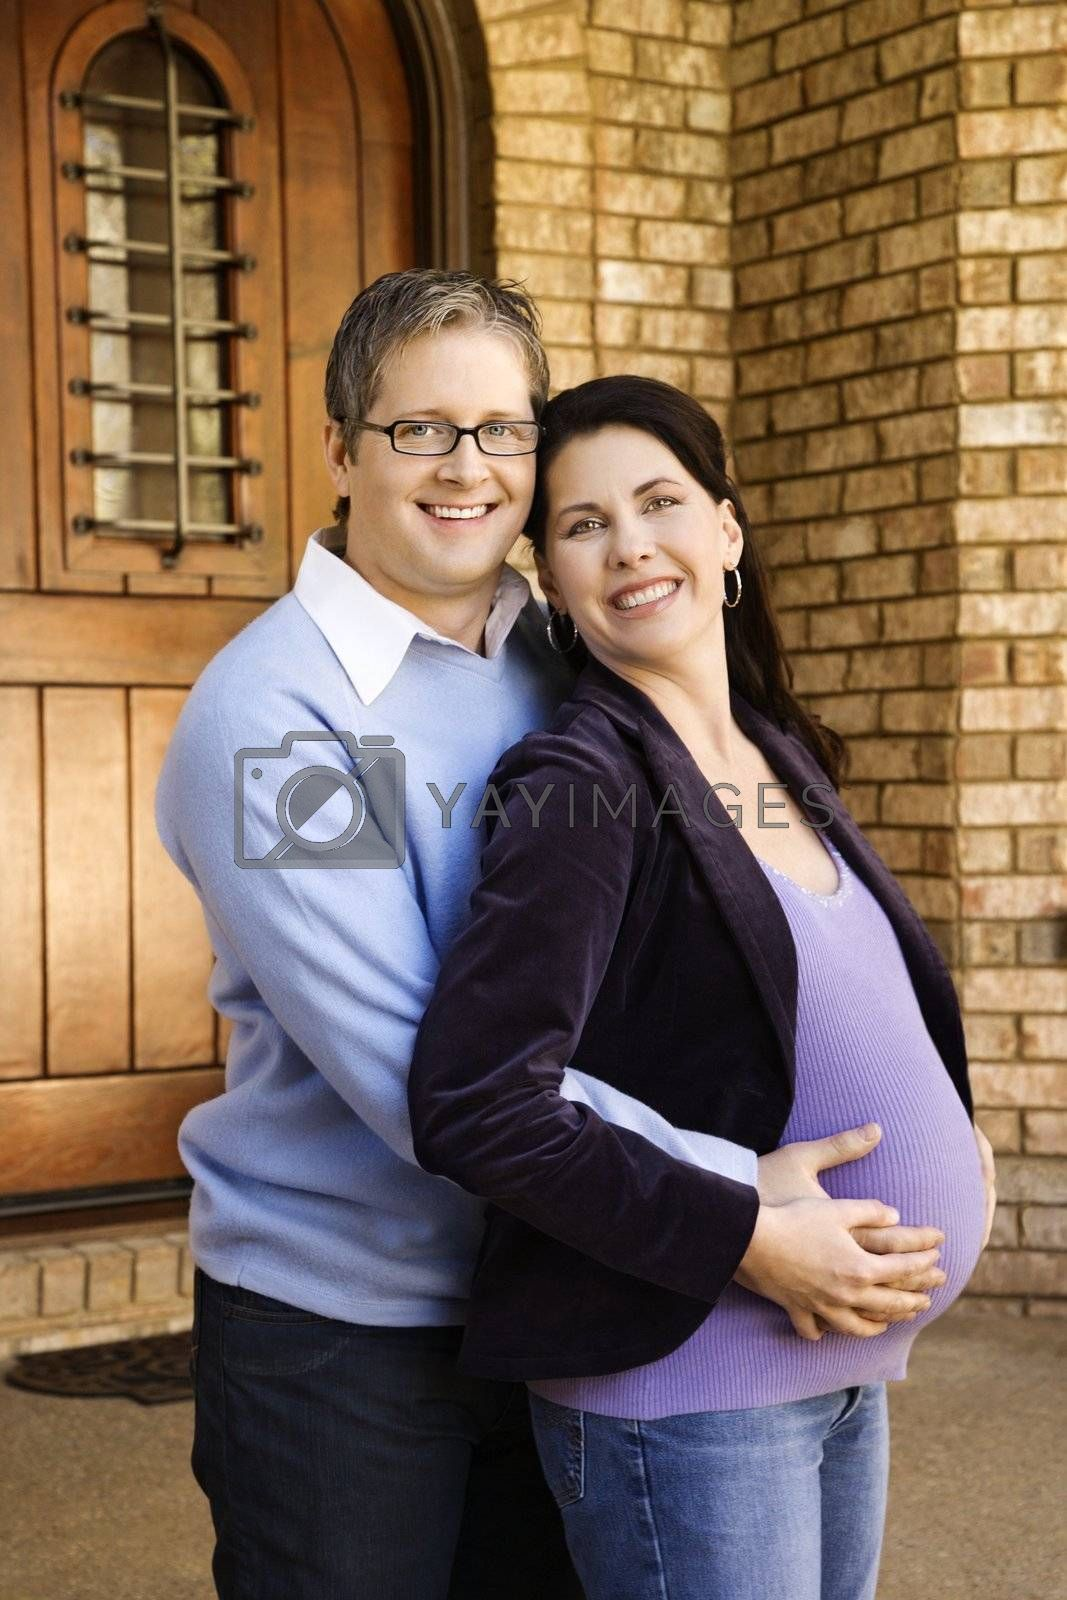 Portrait of adult male and pregnant female embracing near doorway.